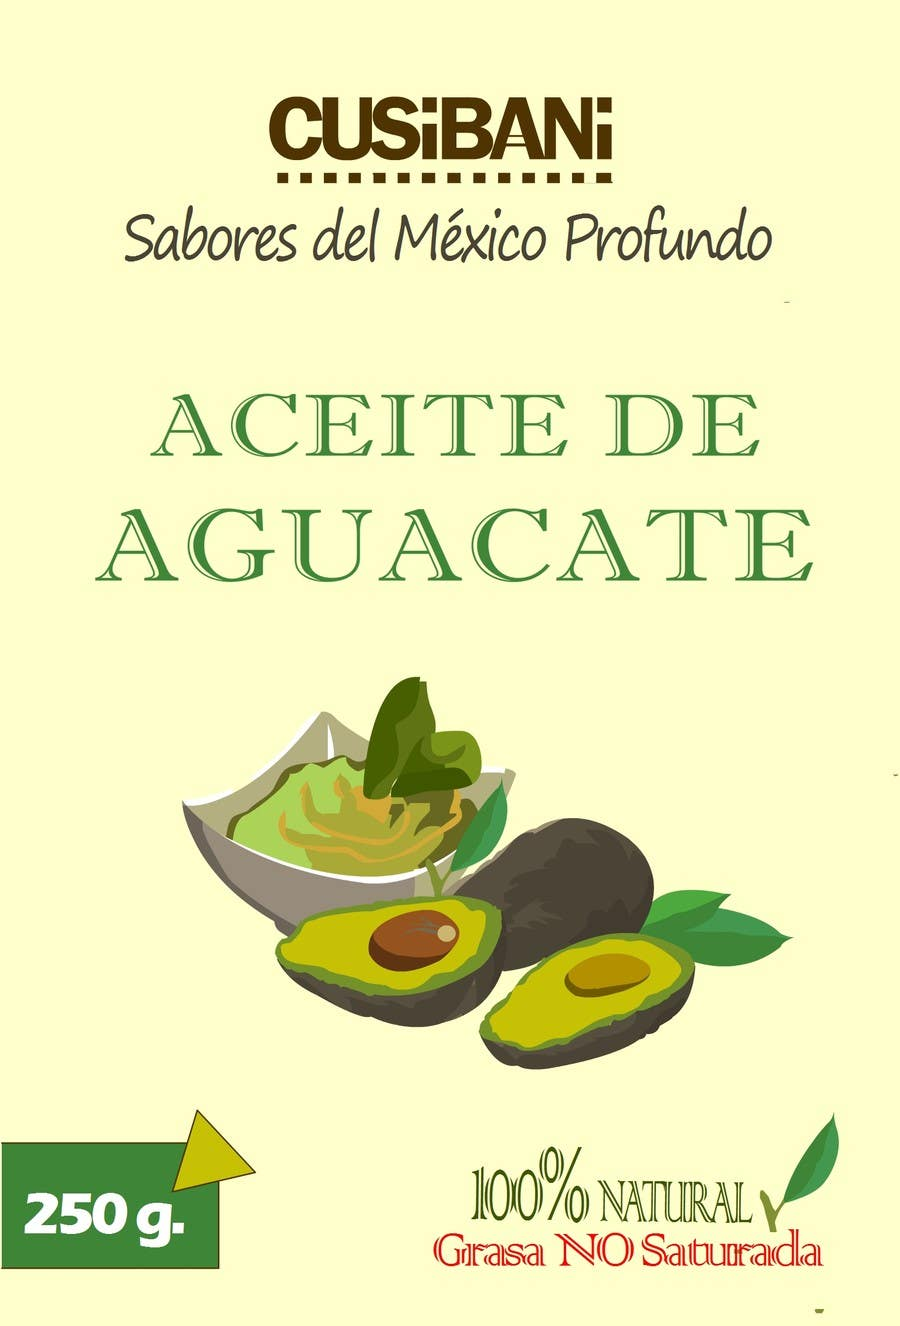 Contest Entry #2 for Etiqueta para botella de aceite de aguacate.